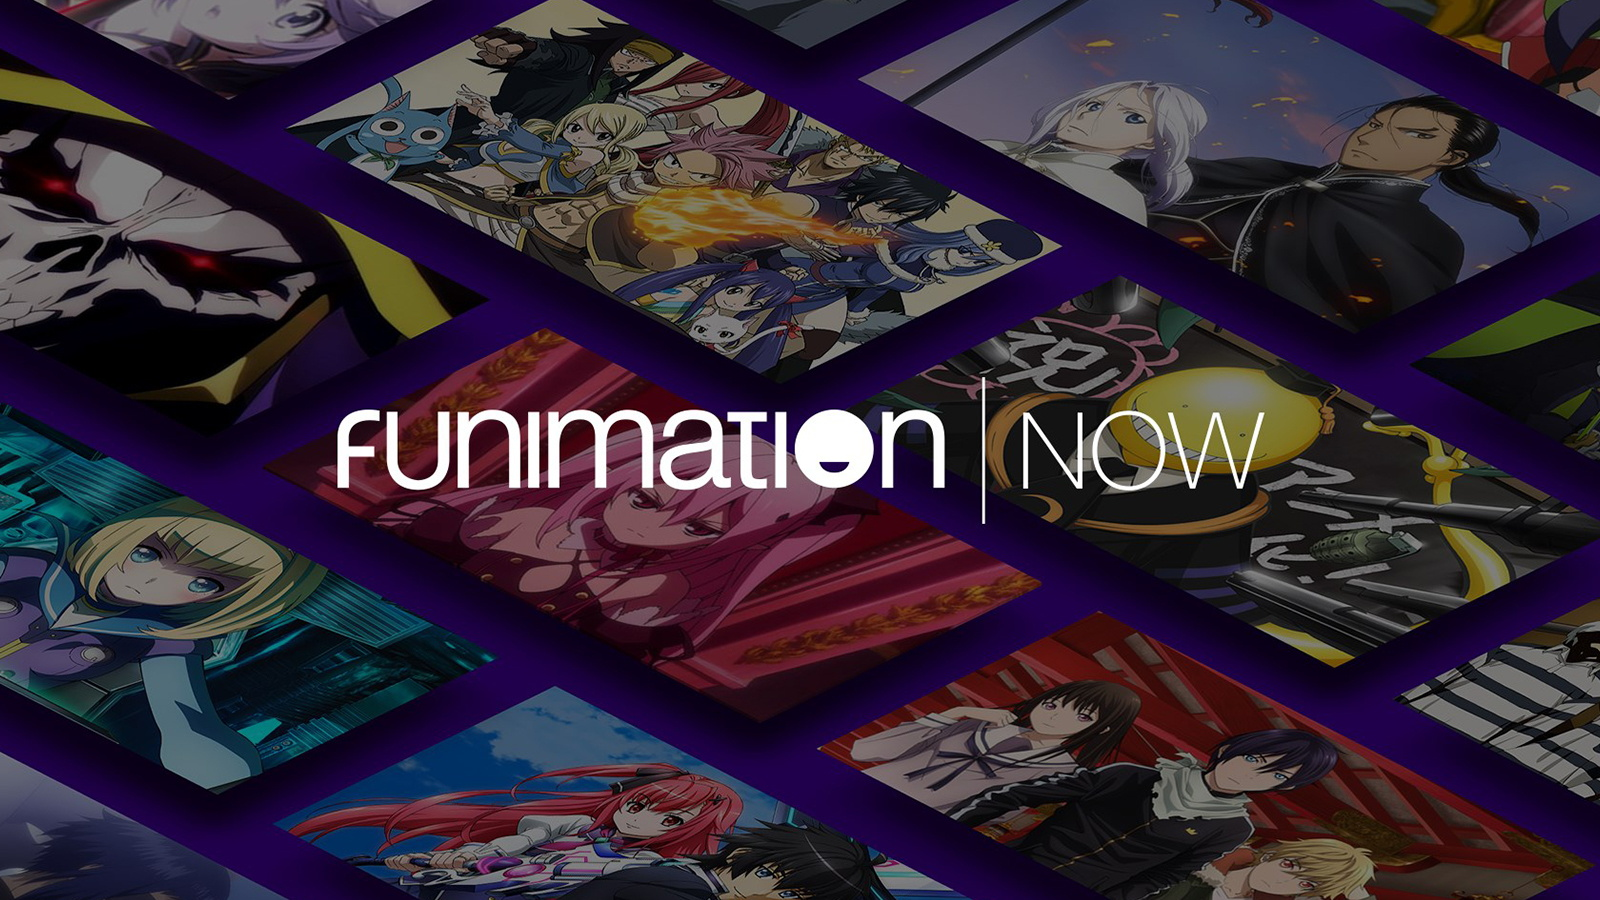 Funimation Now